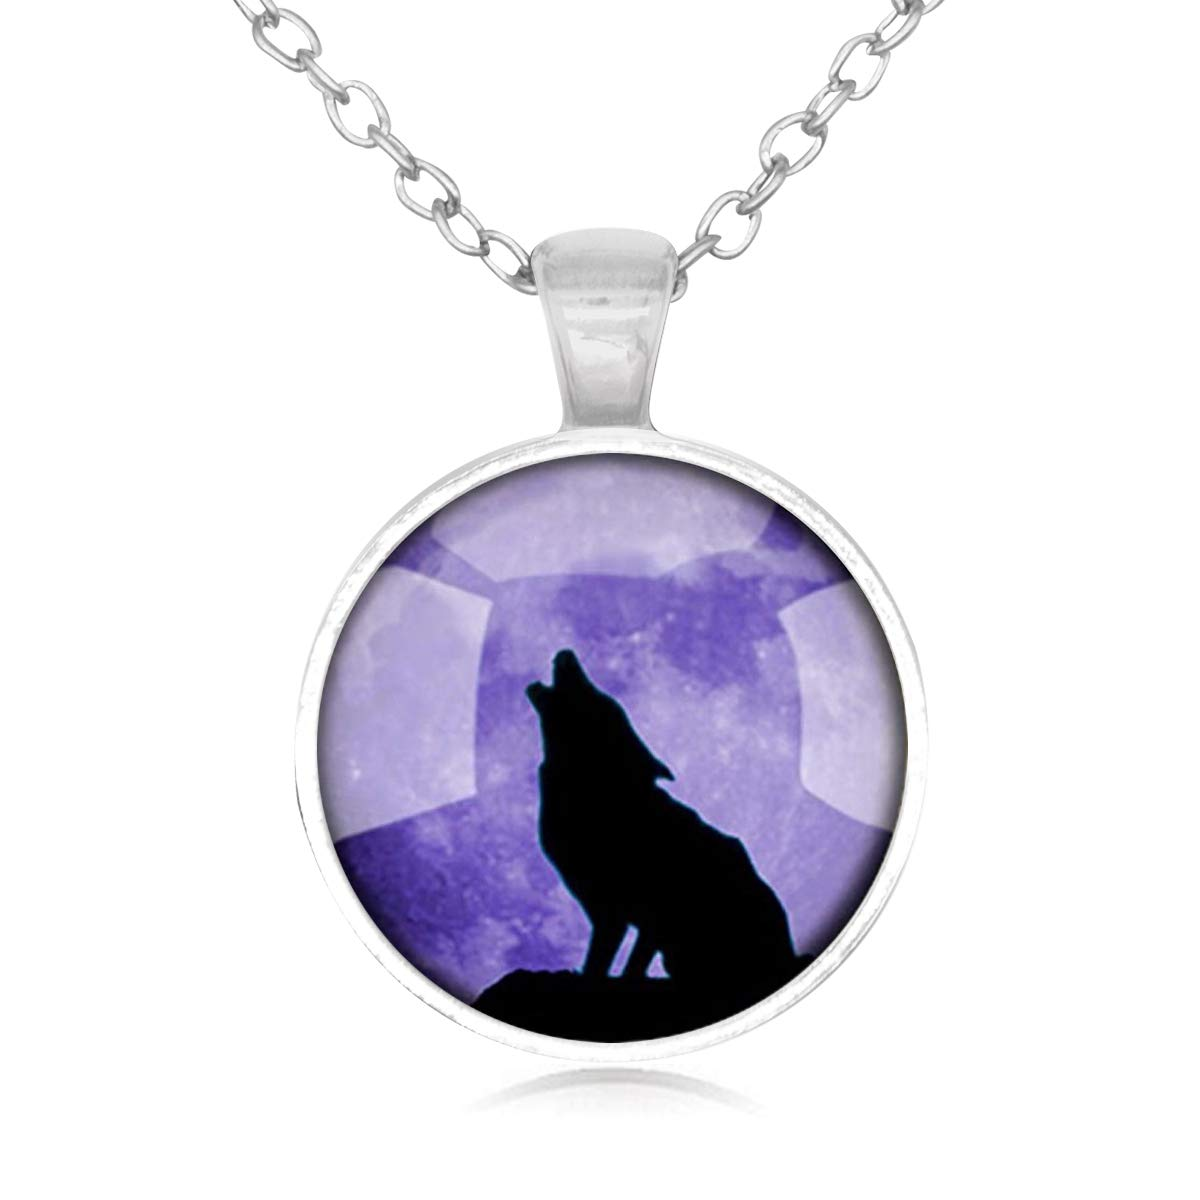 Lightrain Purple Howling Wolf Pendant Necklace Vintage Bronze Chain Statement Necklace Handmade Jewelry Gifts